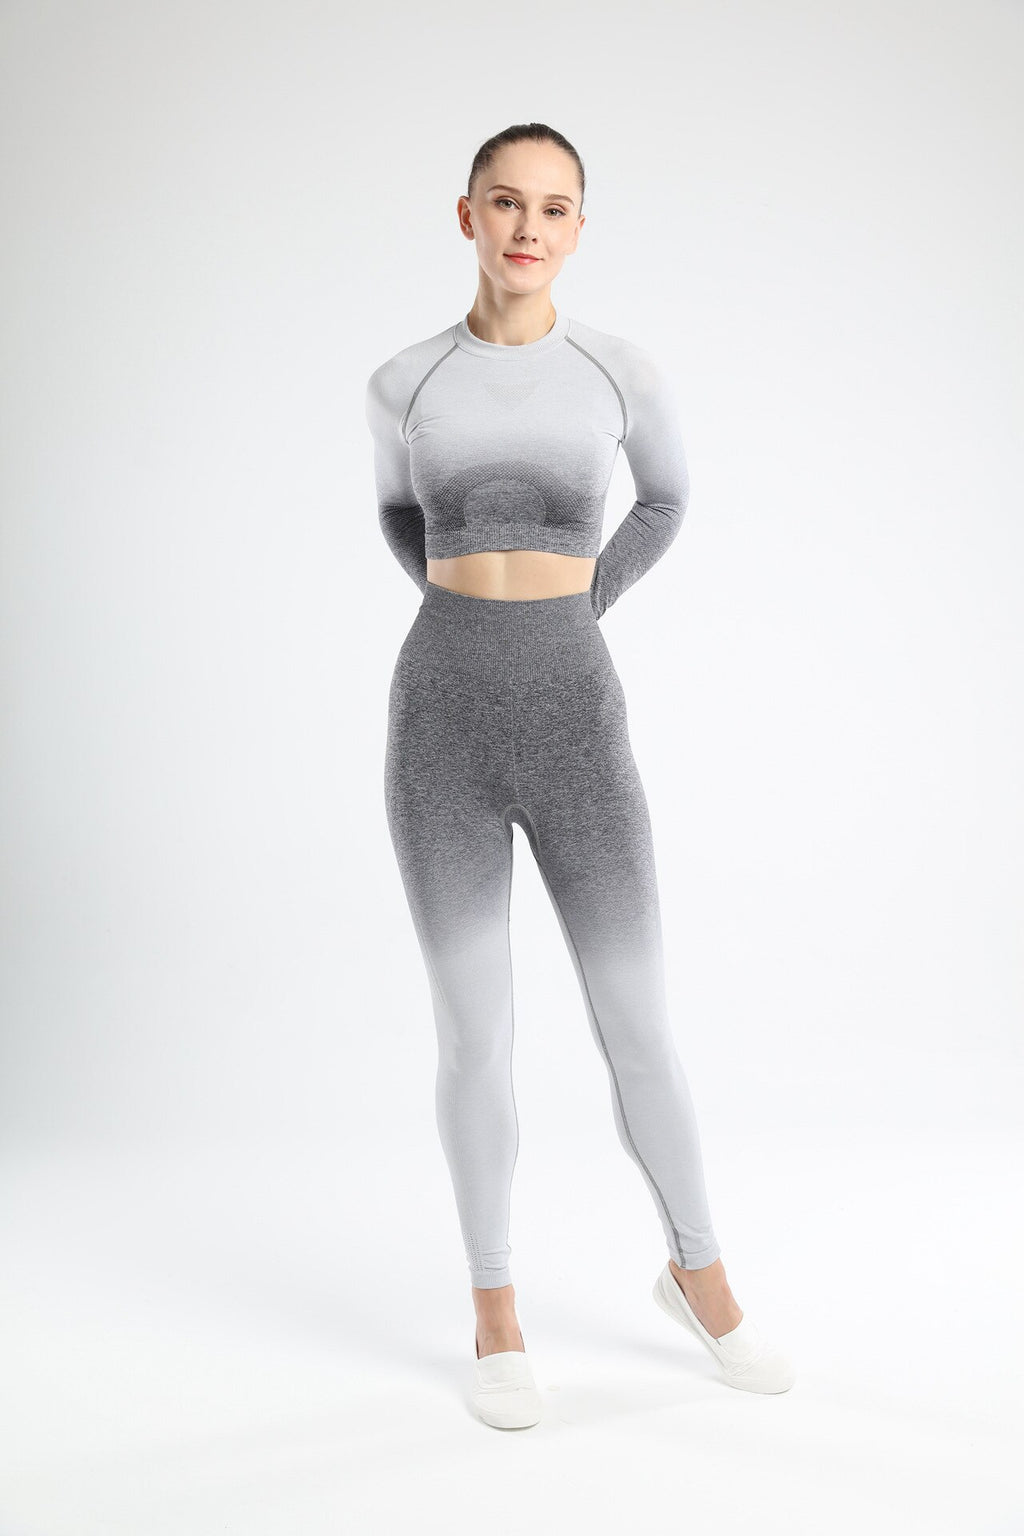 Astoria Seamless Ombre Sleeved Crop - Grey